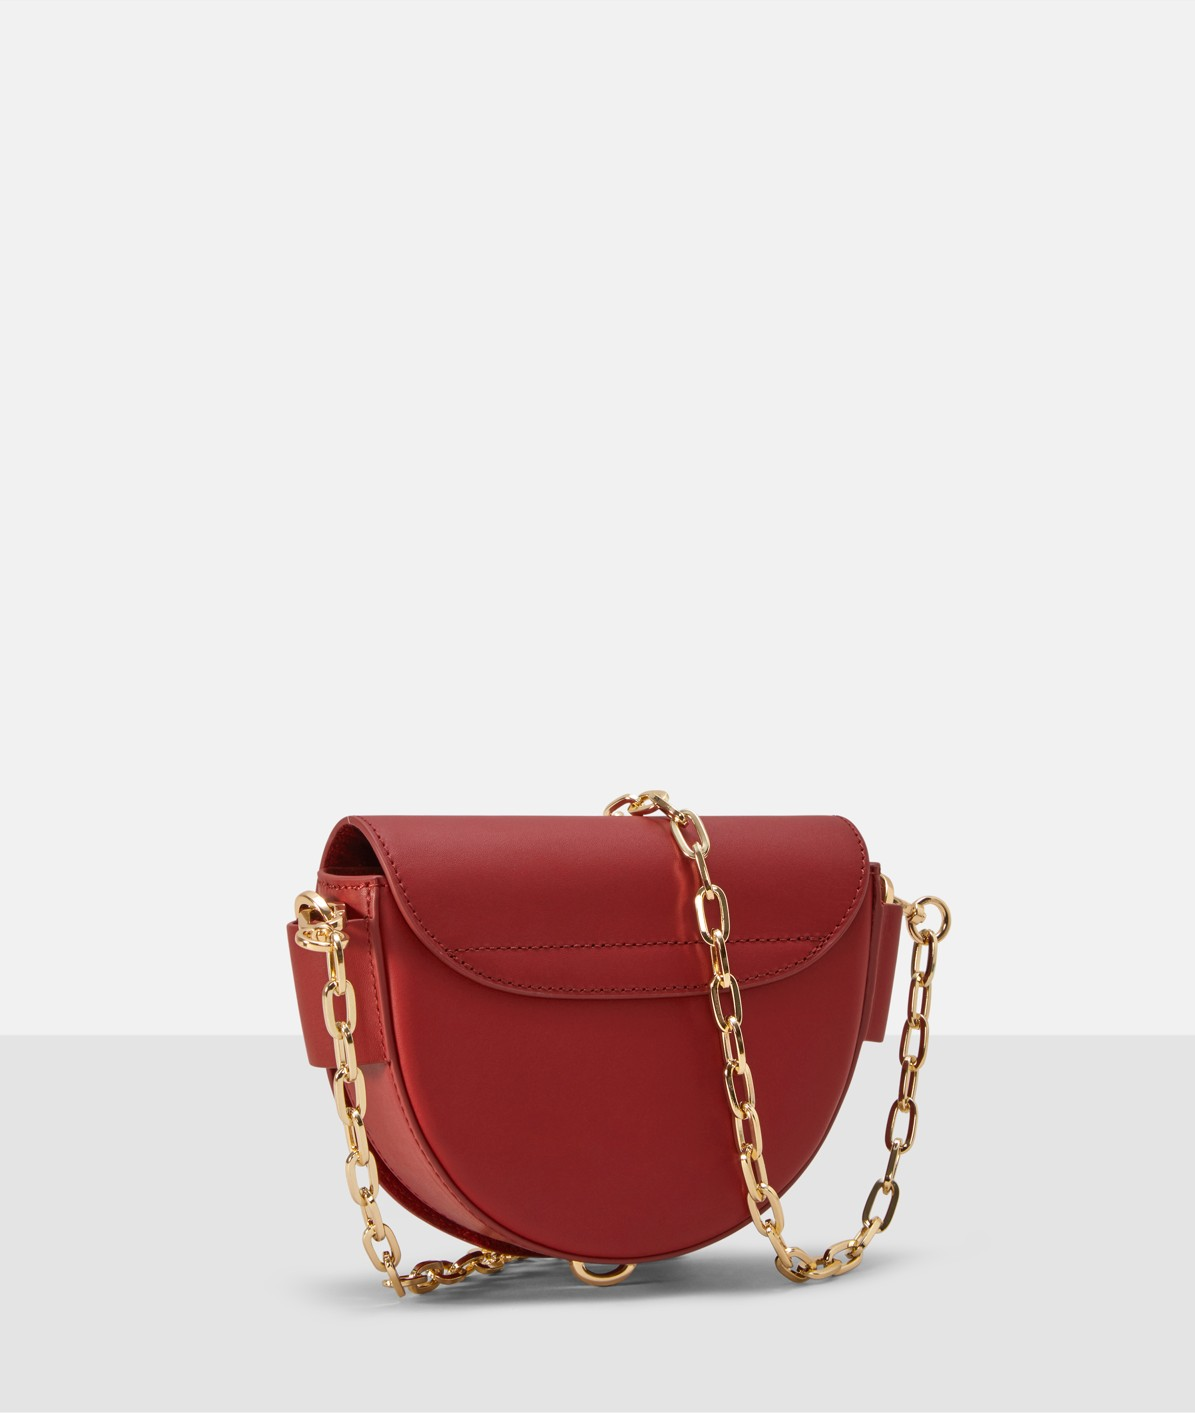 Shoulder bag with a chain strap from liebeskind